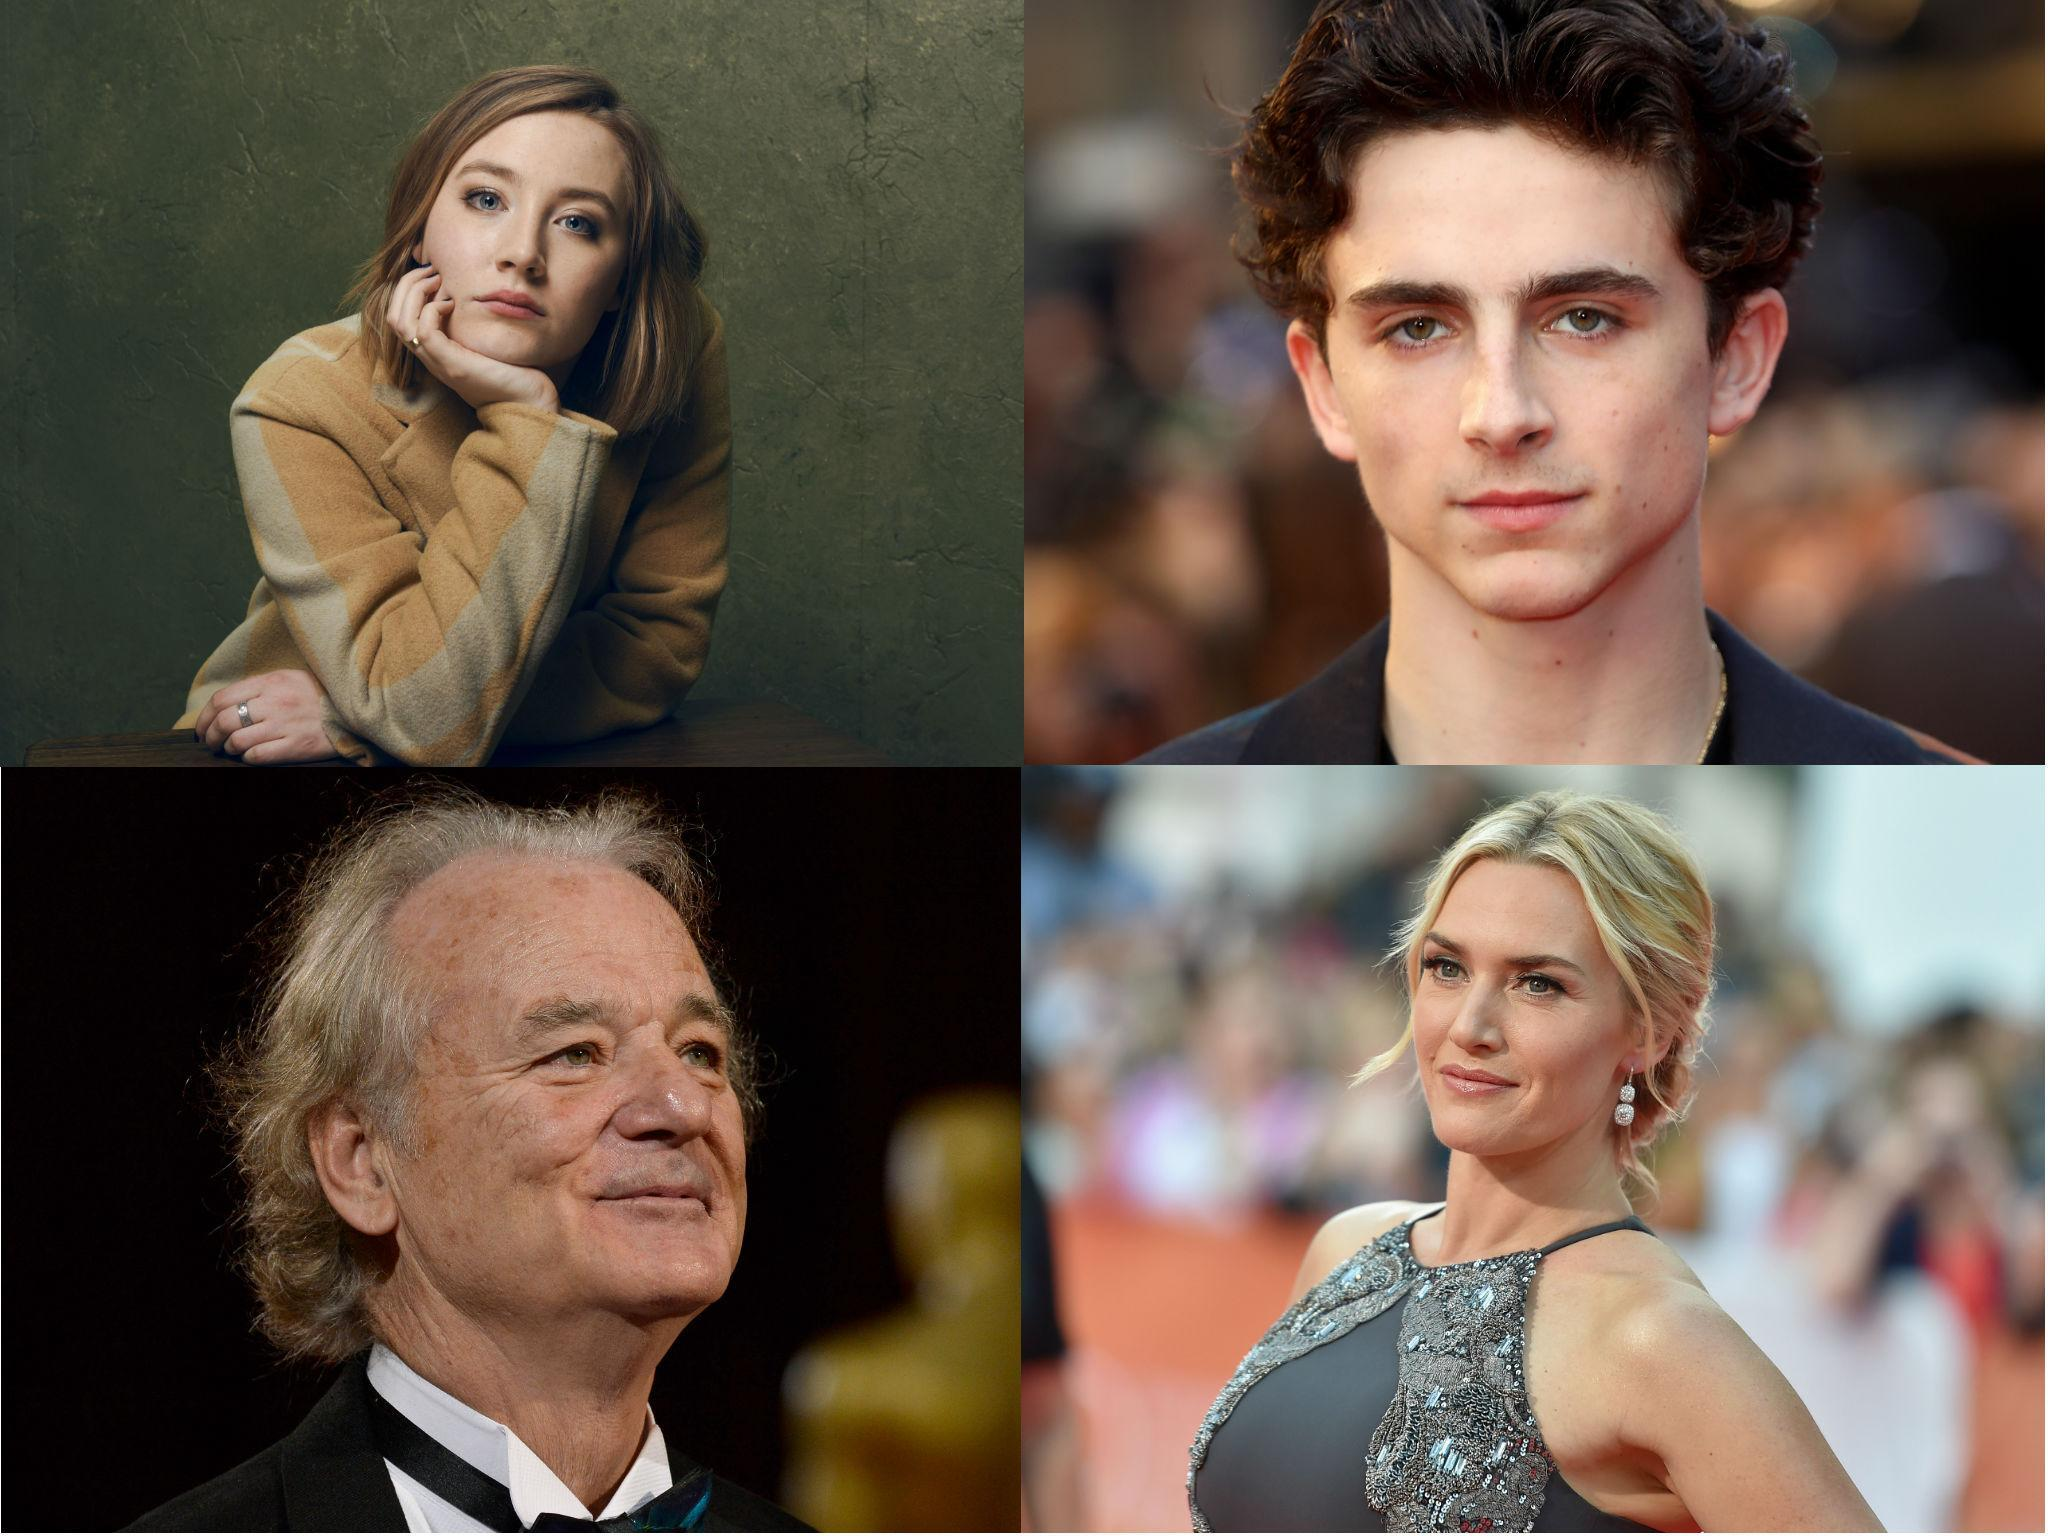 The French Dispatch: Every actor who will star in Wes Anderson's high-profile new film